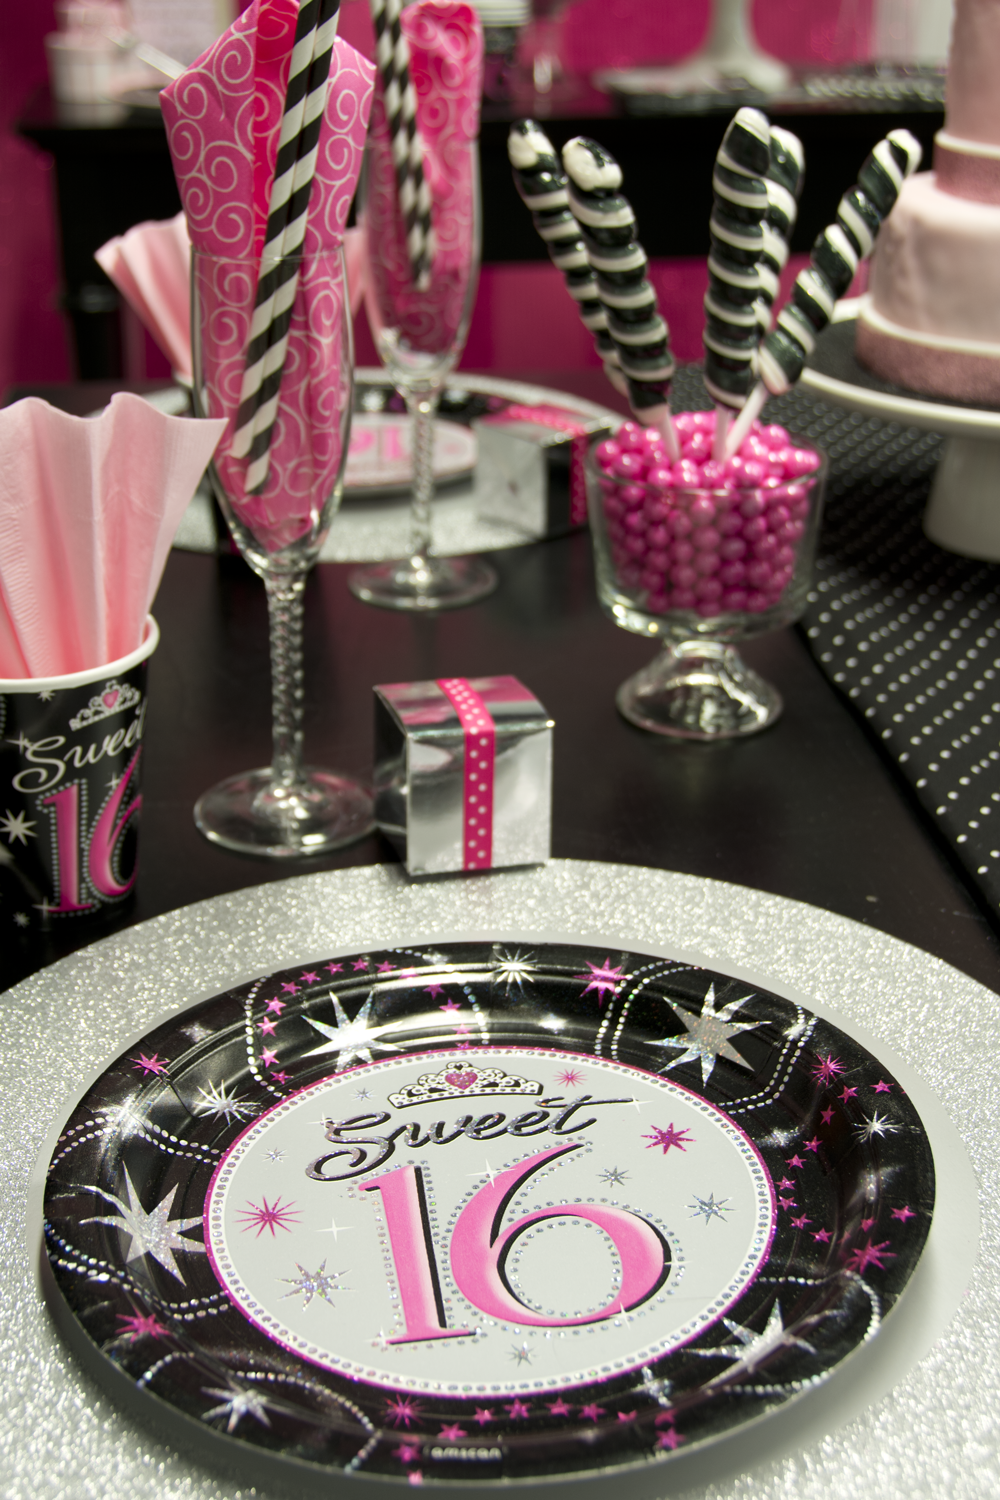 sweet 16 party ideas for girls #sweet16 #celebrateexpress. except